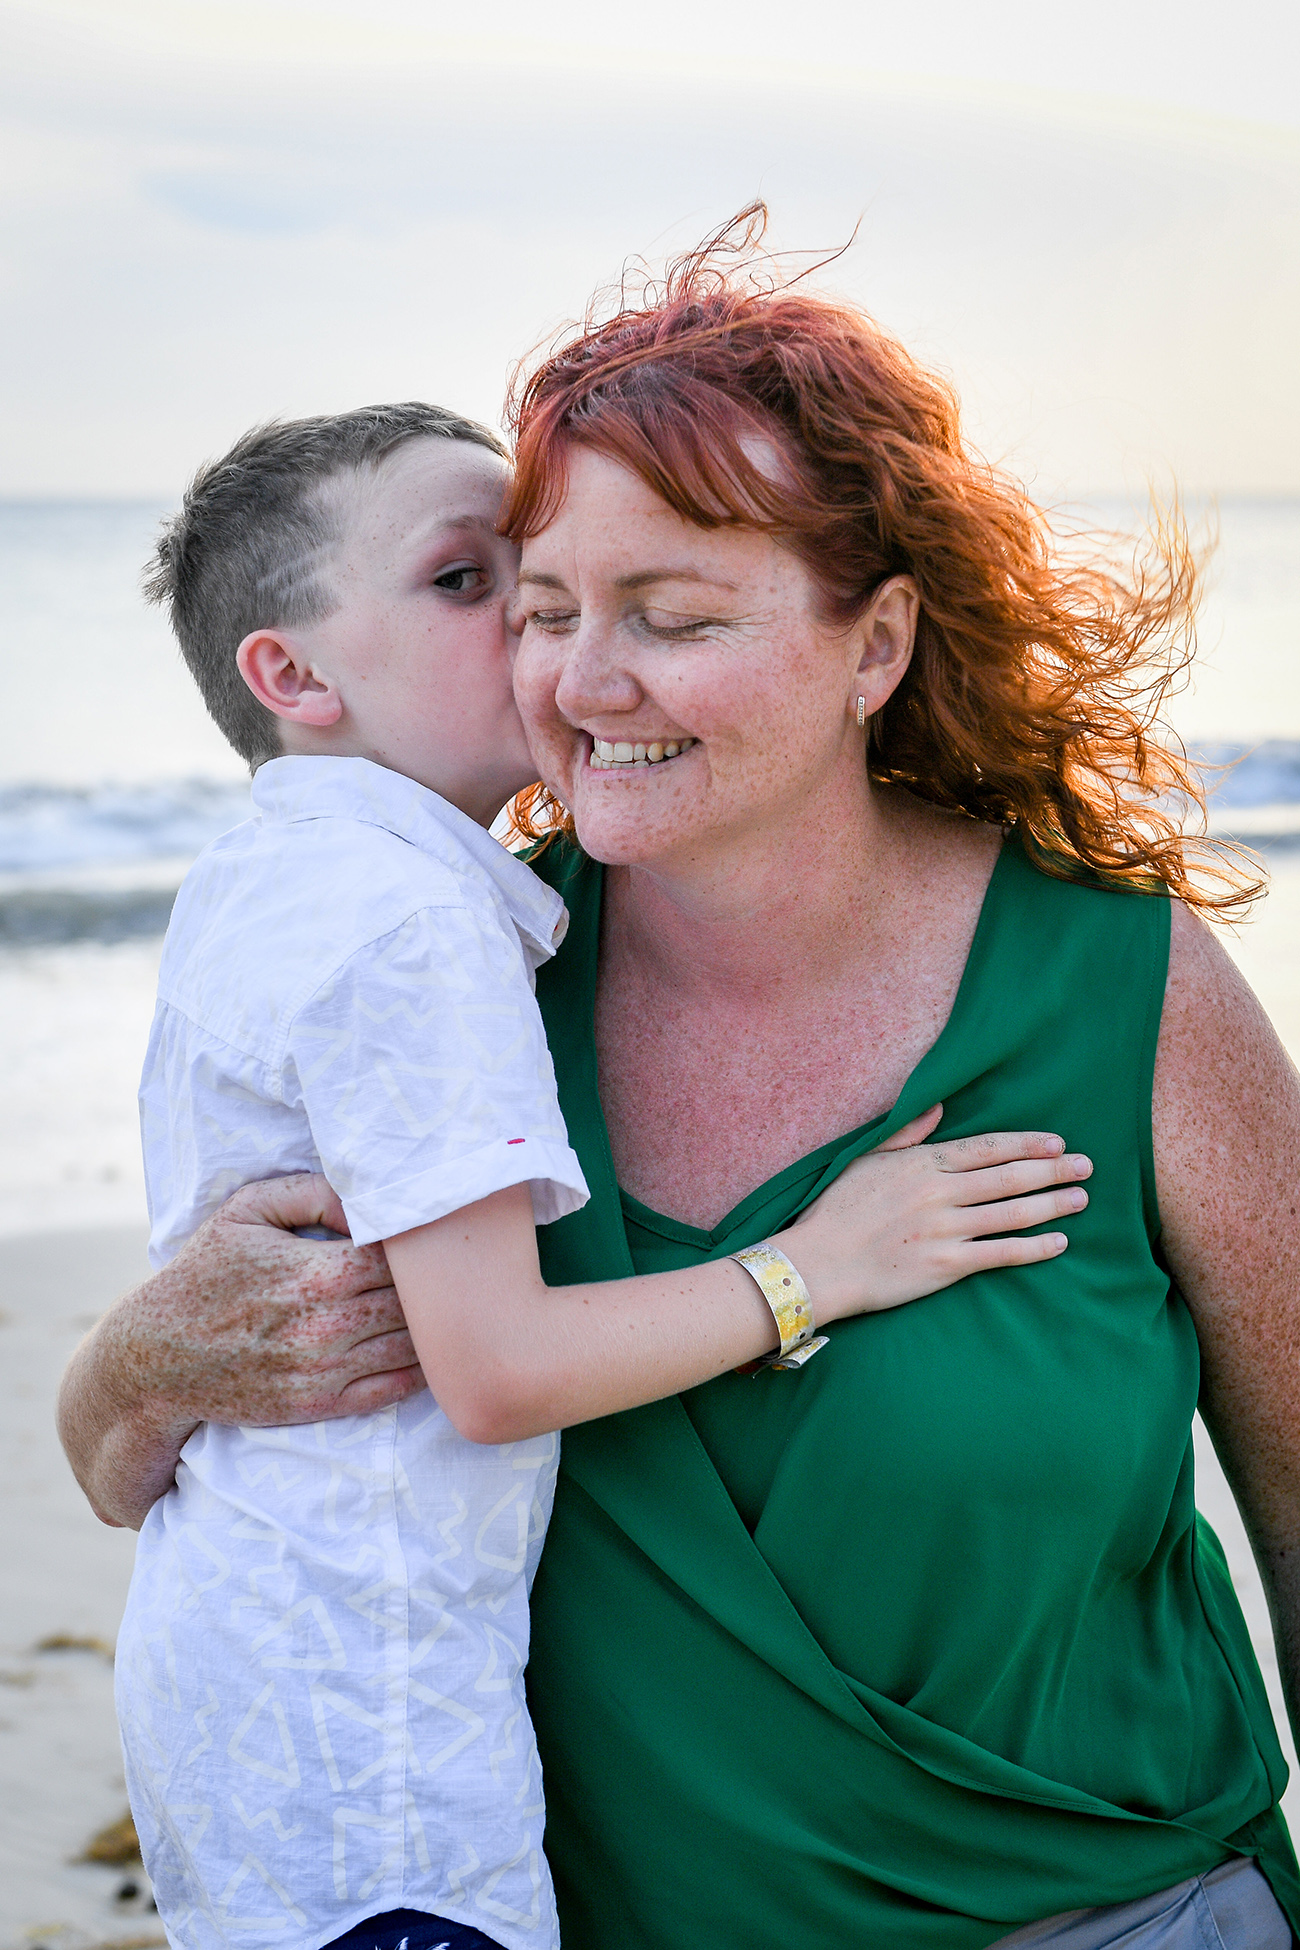 son kisses Red haired mum on beach in Fiji